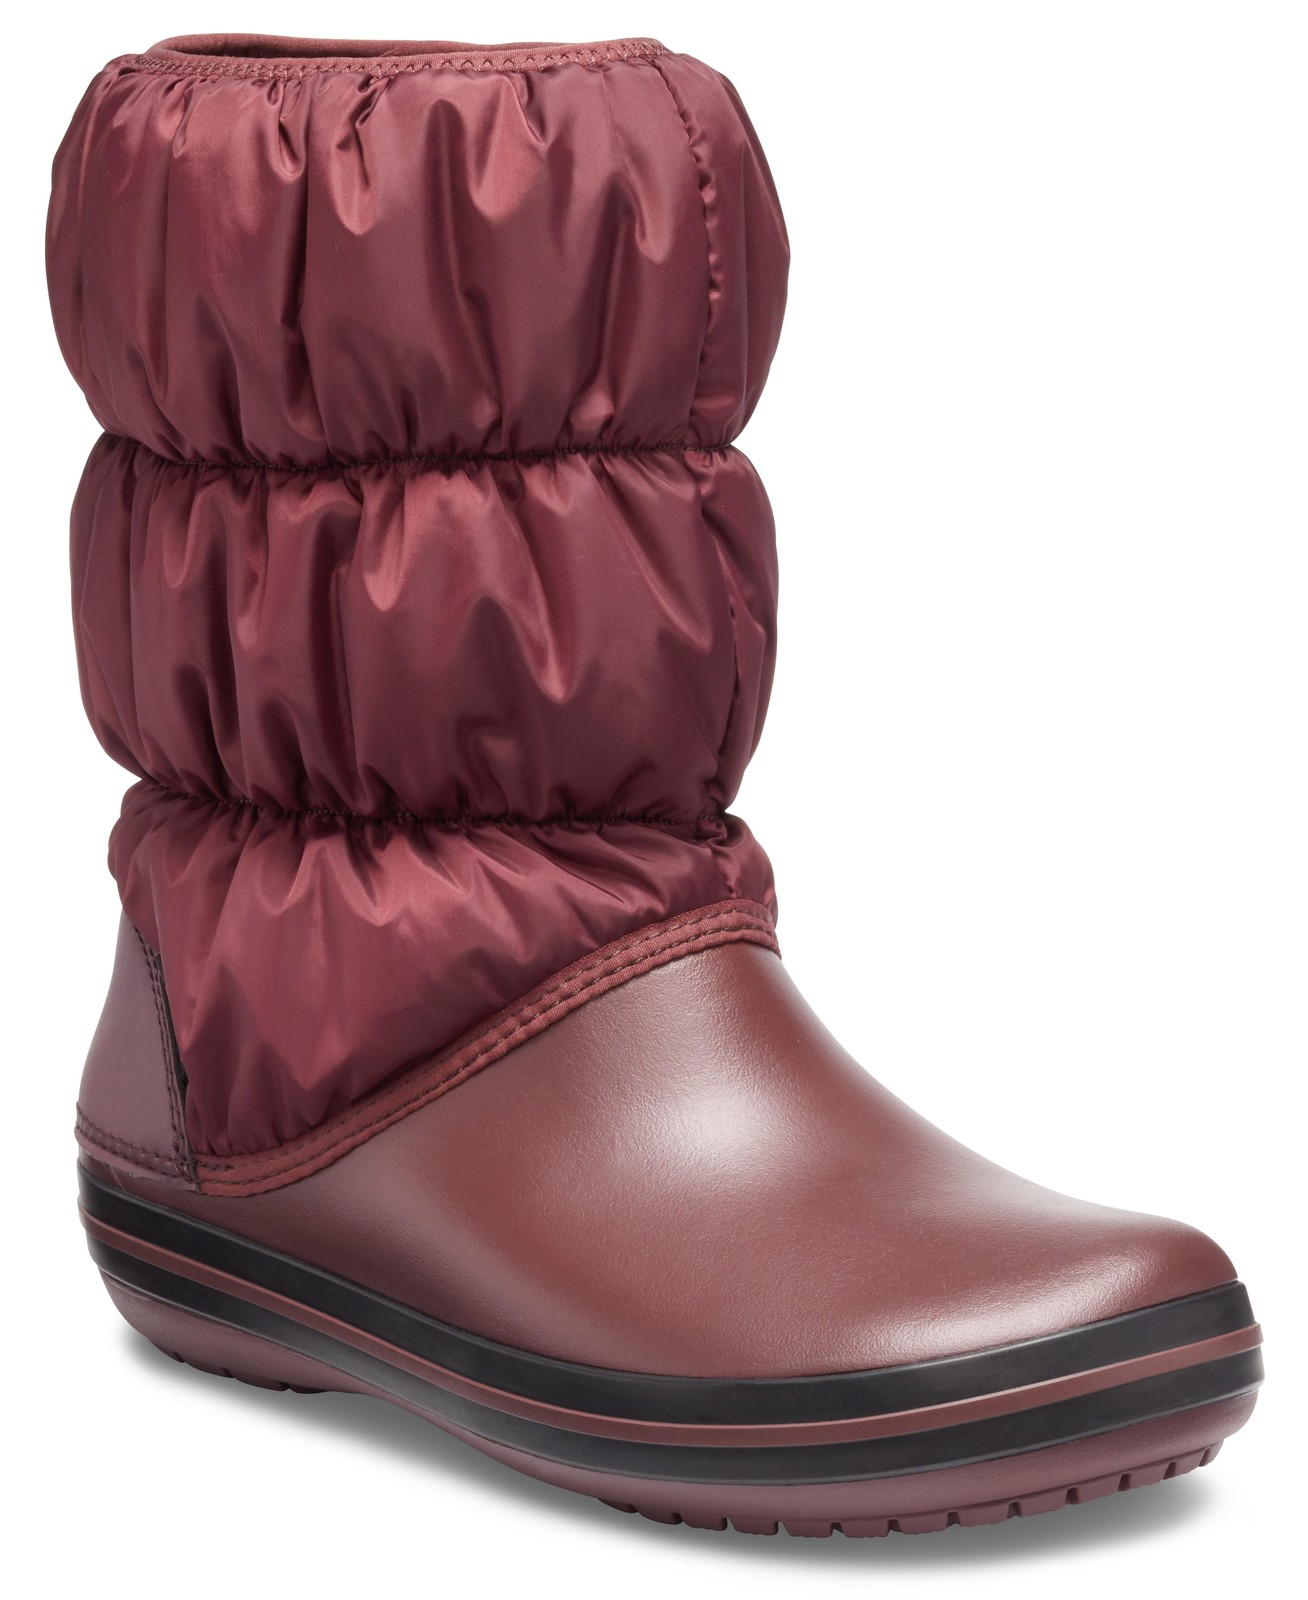 Crocs vínové sněhule Winter Puff Boot Burgundy/Black